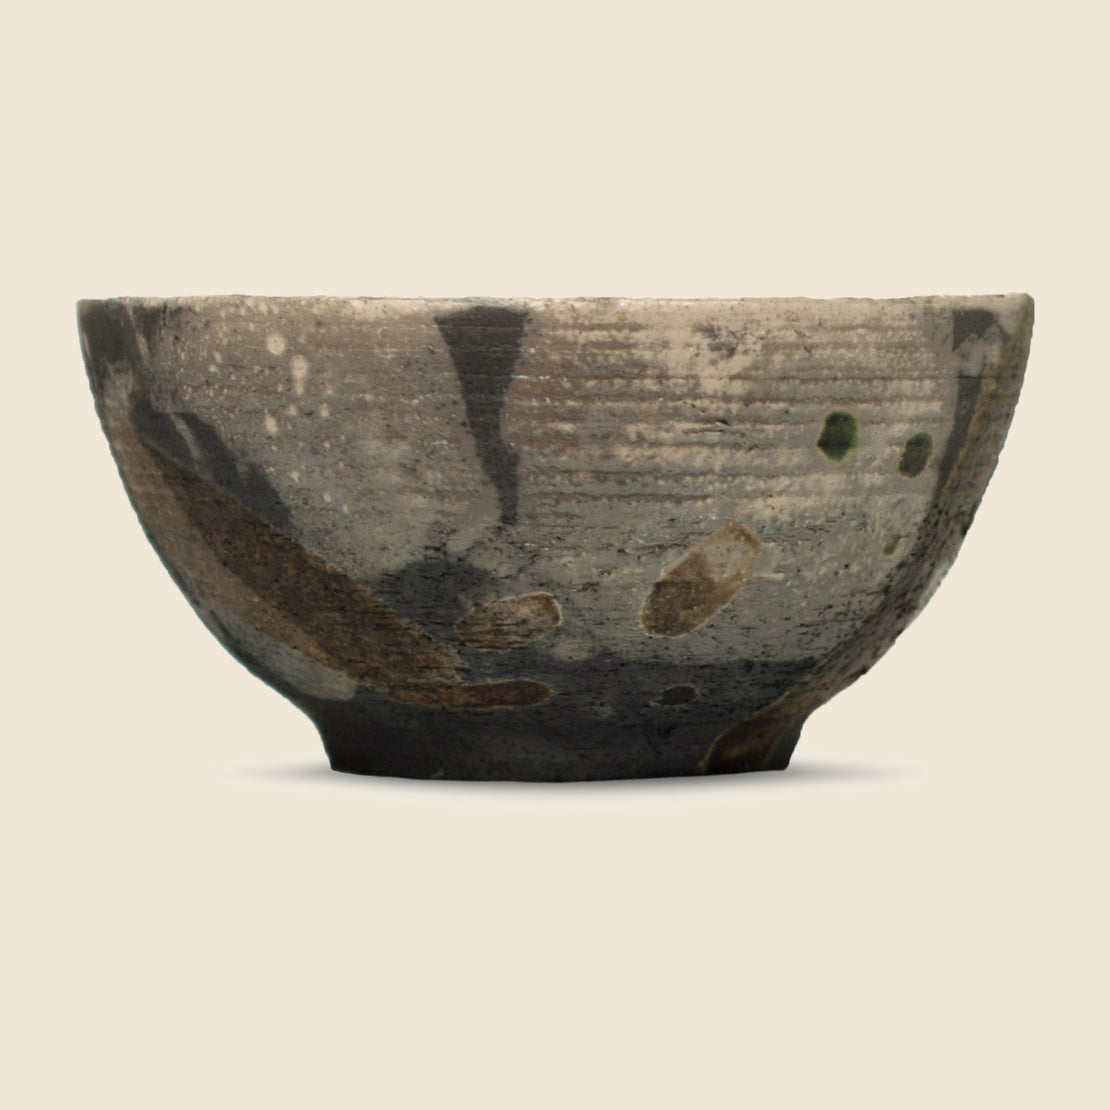 Glazed Clay Pottery Bowl - Blue/Grey/Copper